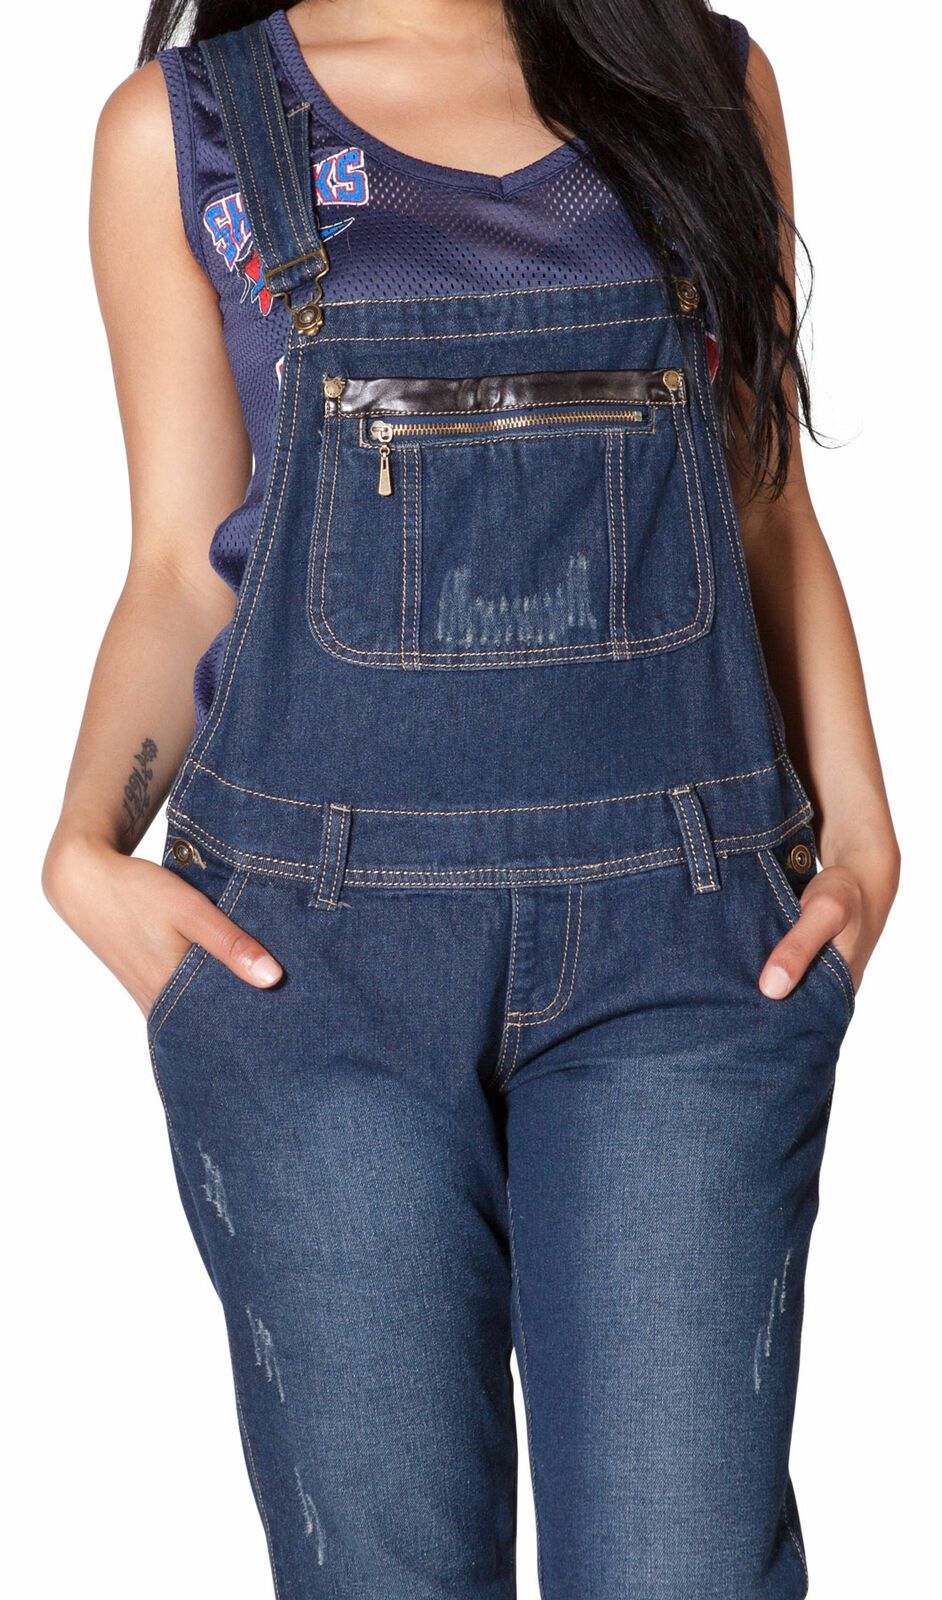 Frontal midriff view of dungarees with hands in front pockets and focus on adjustable straps, belt loops and bib pocket with zip and faux leather.